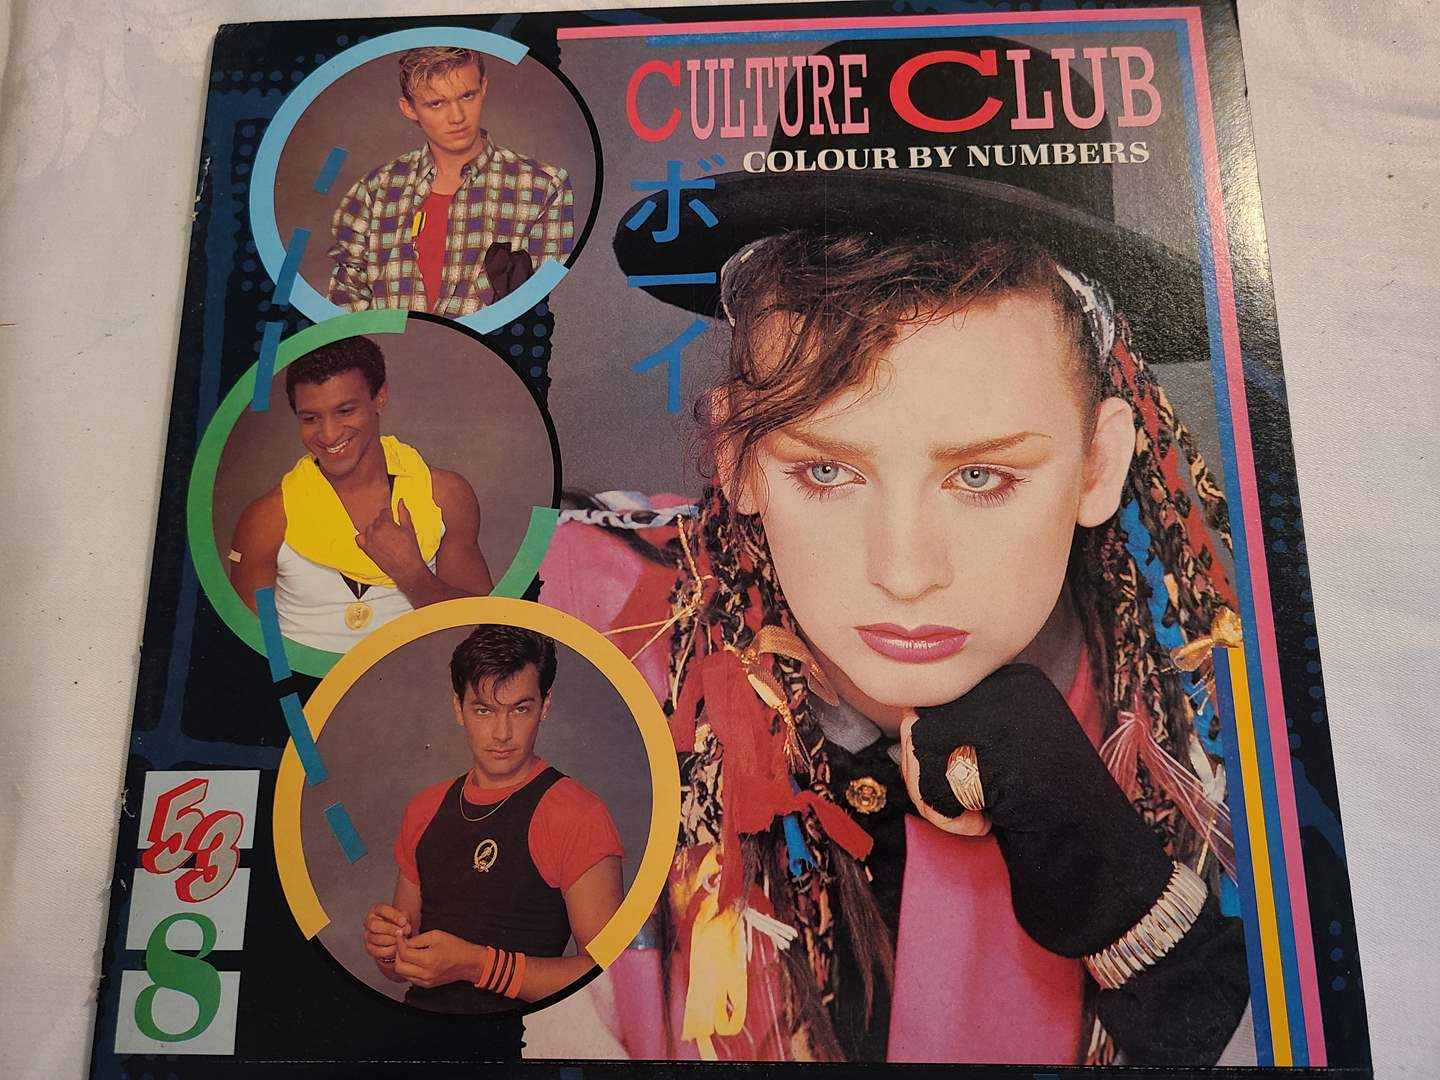 Lot# 129 - Culture Club Record LP Album * Colour by Numbers (main image)